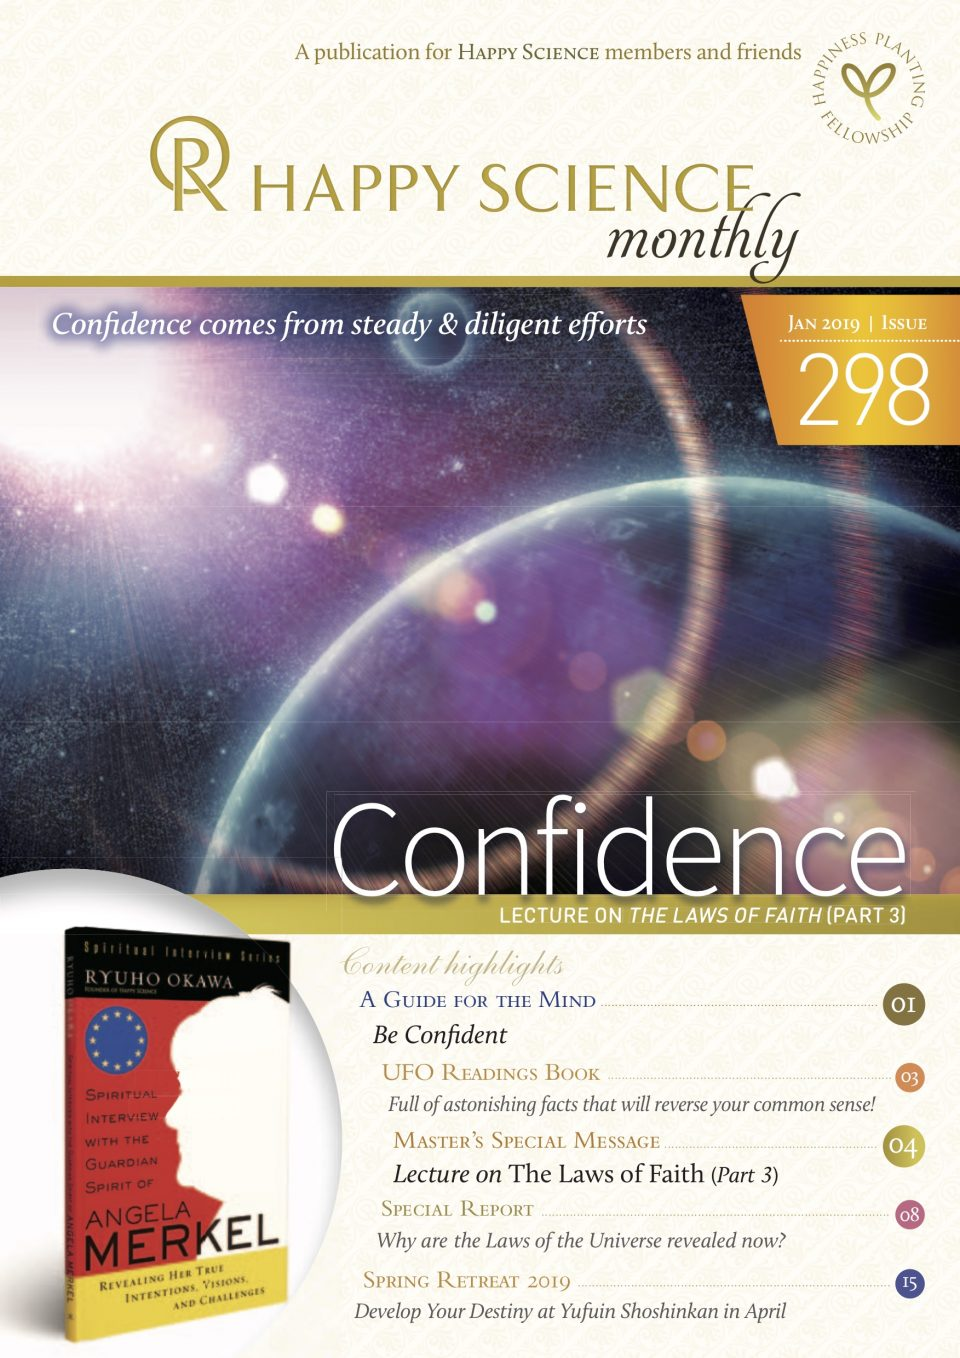 HAPPY SCIENCE Monthly 298 is released!